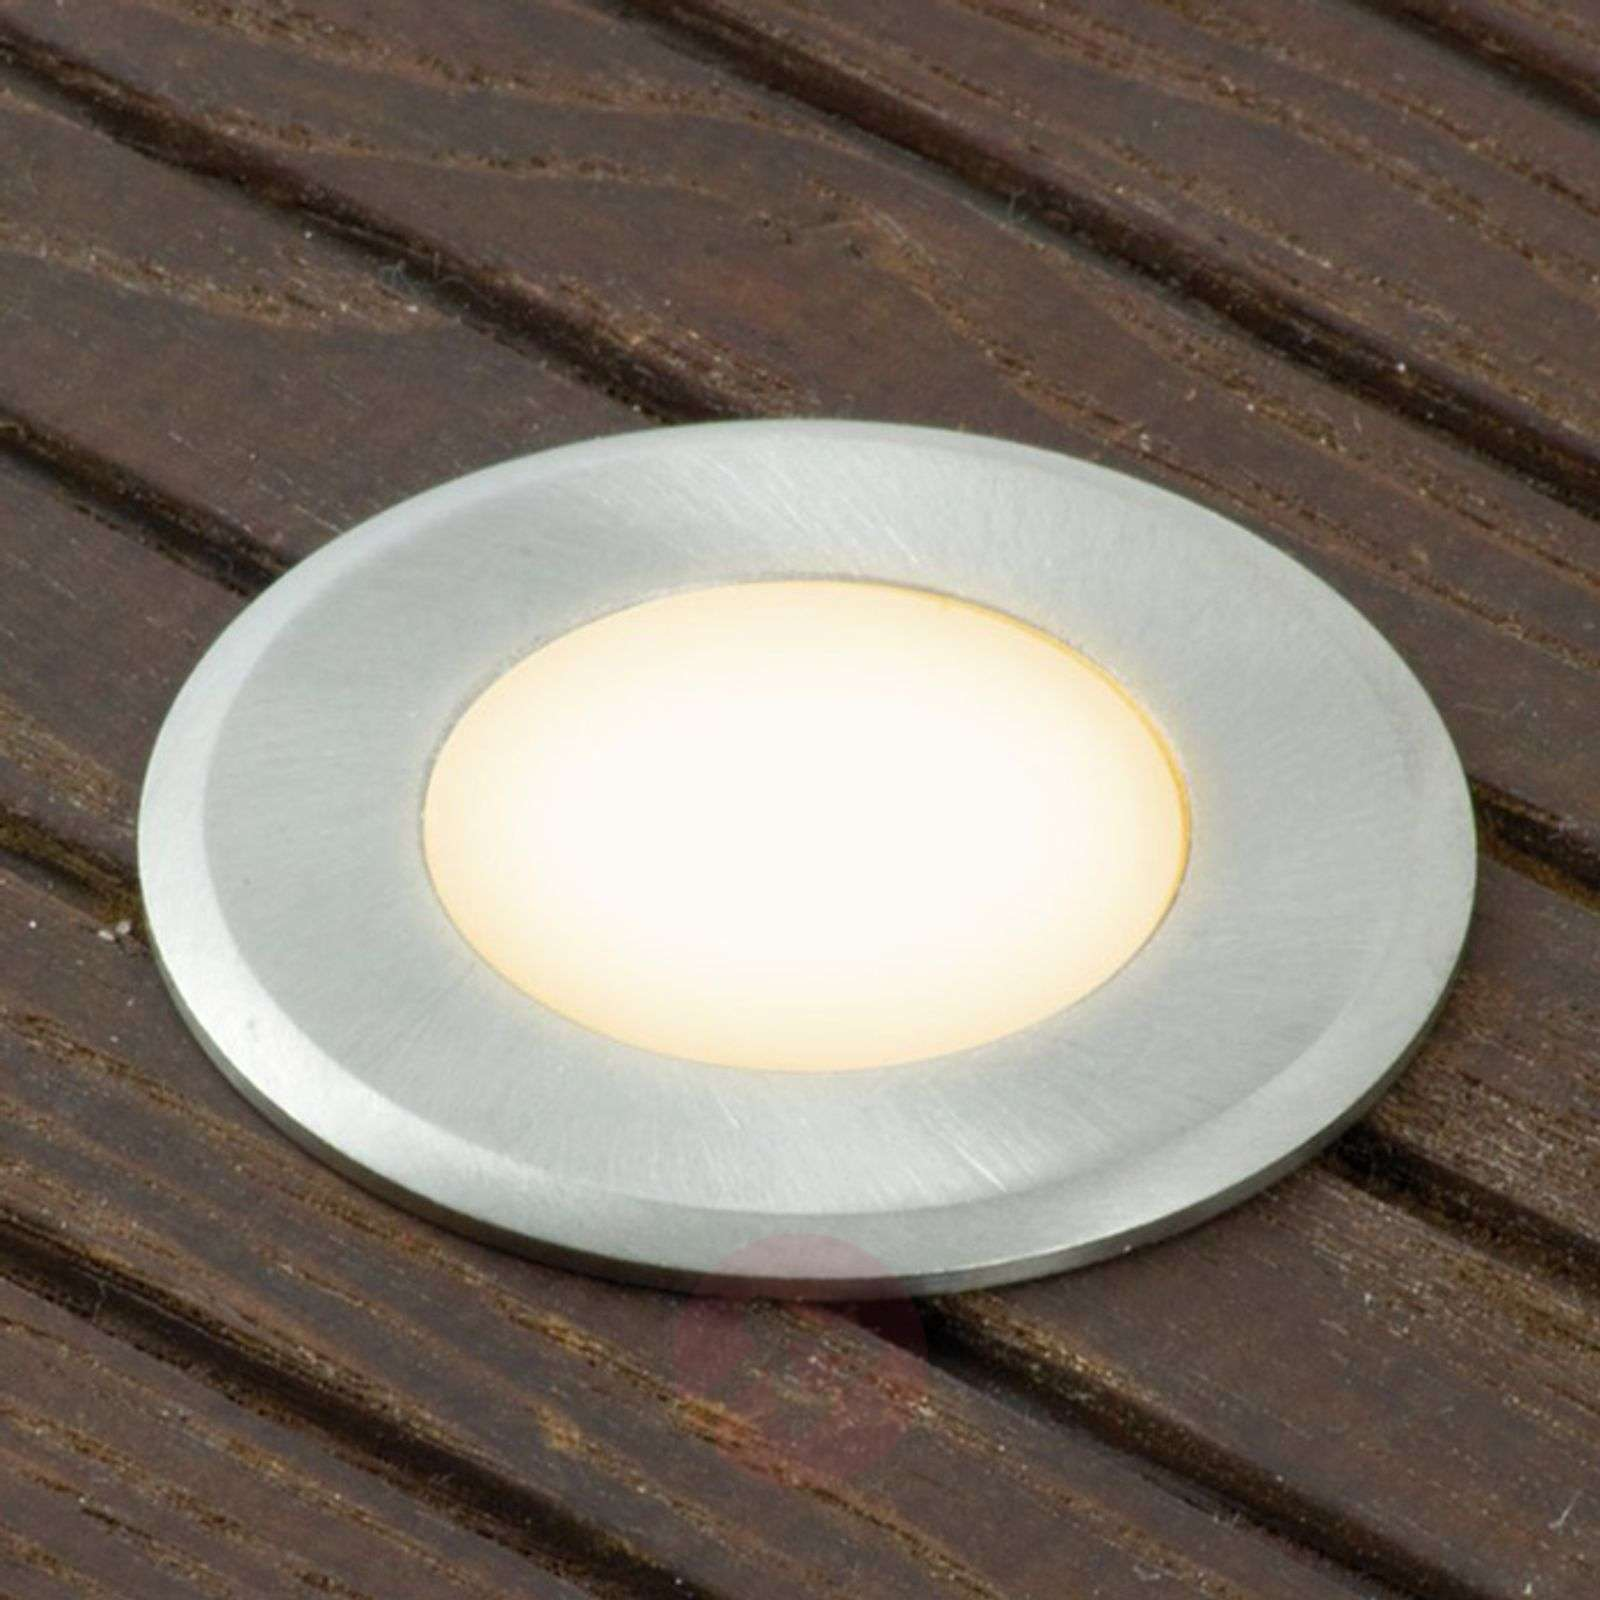 led p recessed included kit in white kits bulb bazz matte with the depot home lighting